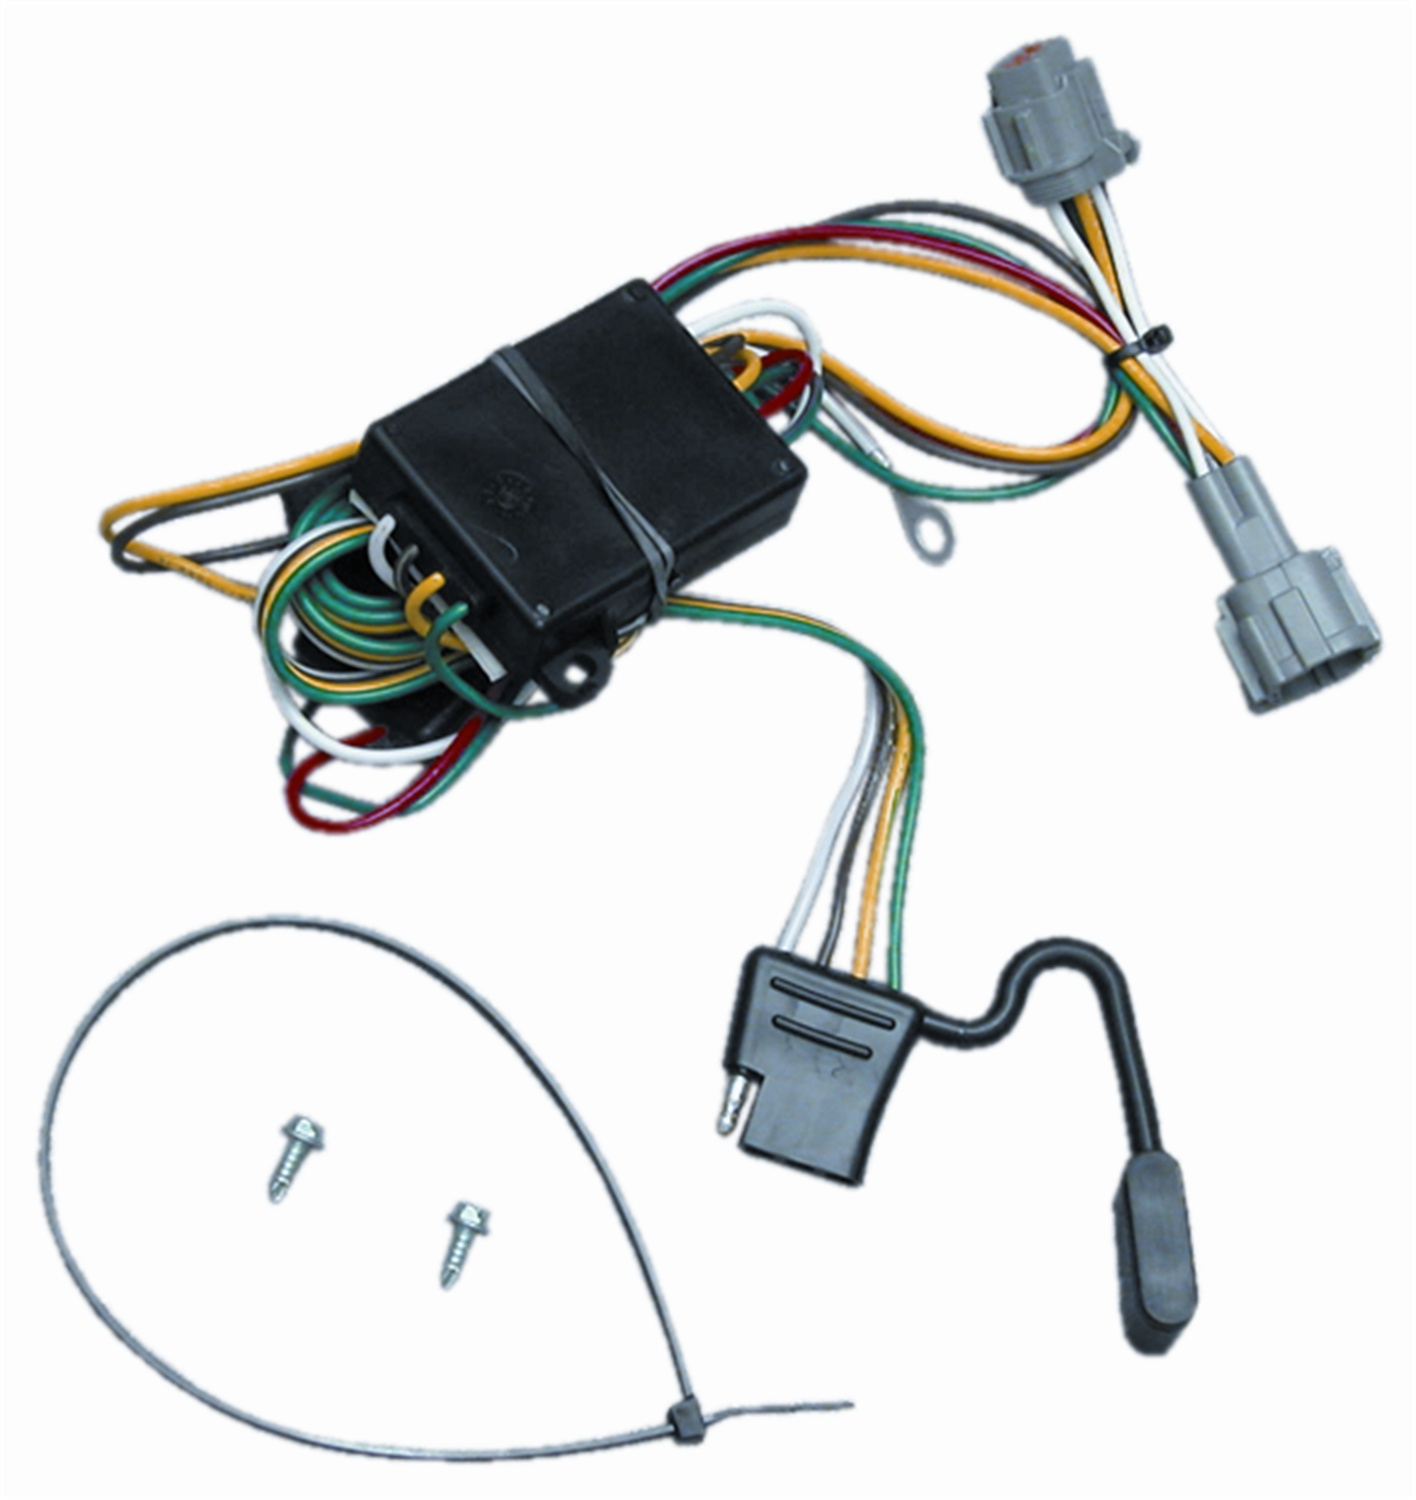 small resolution of trailer wiring for 98 quest mini van 98 04 nissan frontier 98 nissan frontier trailer wiring harness 98 nissan frontier trailer wiring